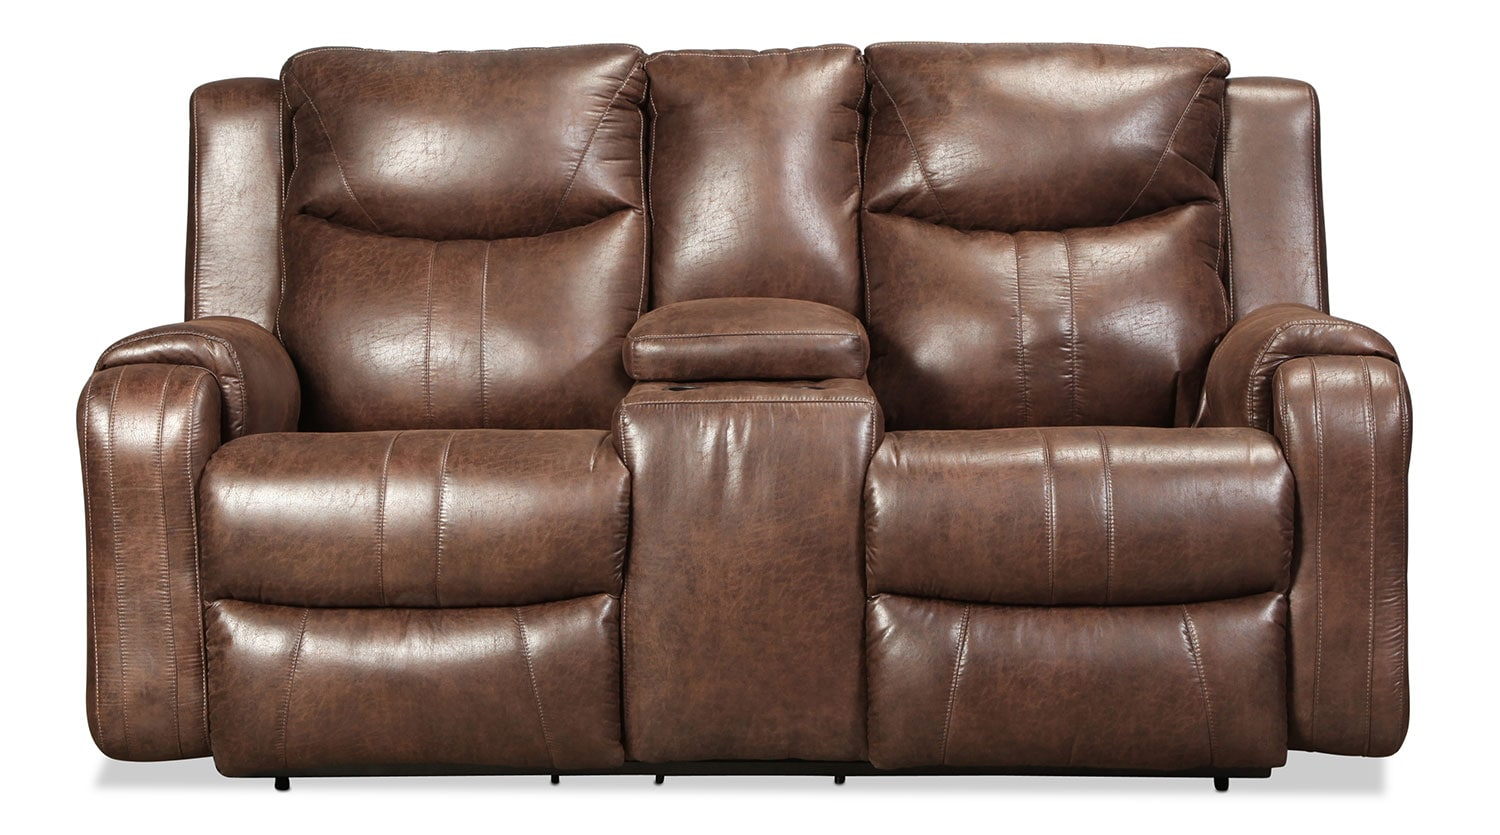 Buhl Reclining Loveseat - Sable